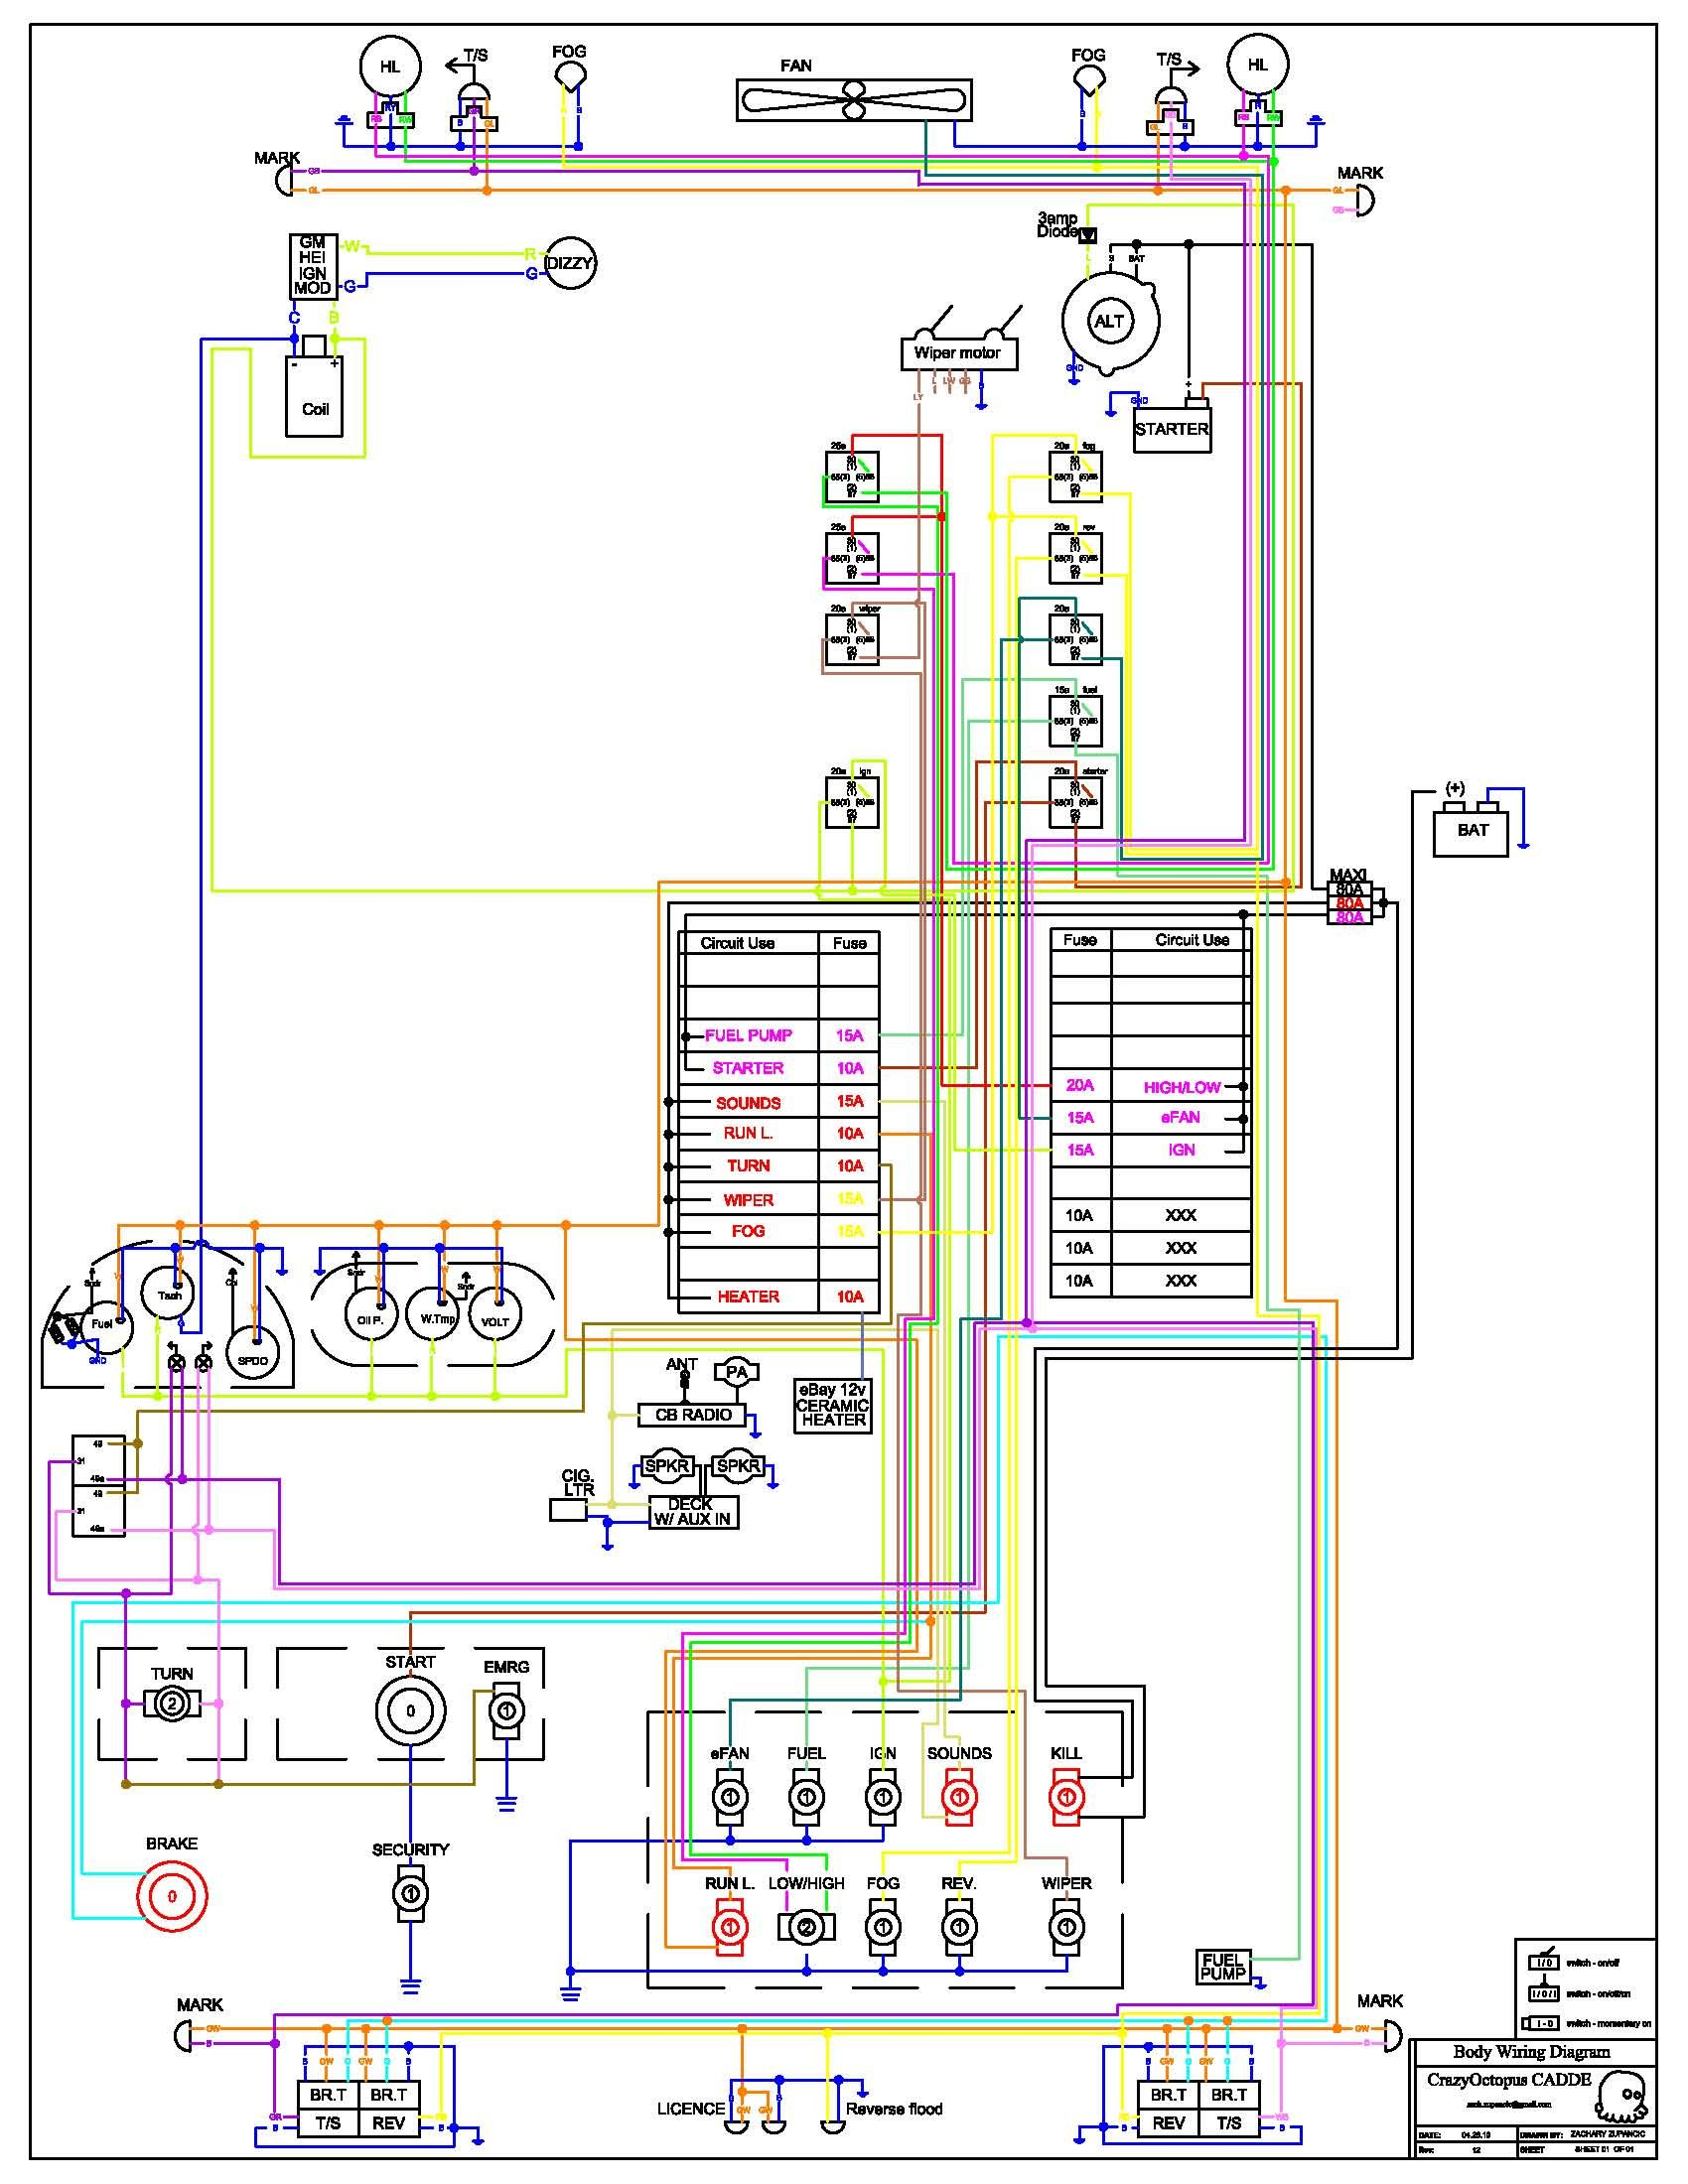 f0a9ebc3a4a2529096f135d5fec5faaa race car wiring diagrams diagram pinterest cars racing mower wiring diagram at creativeand.co